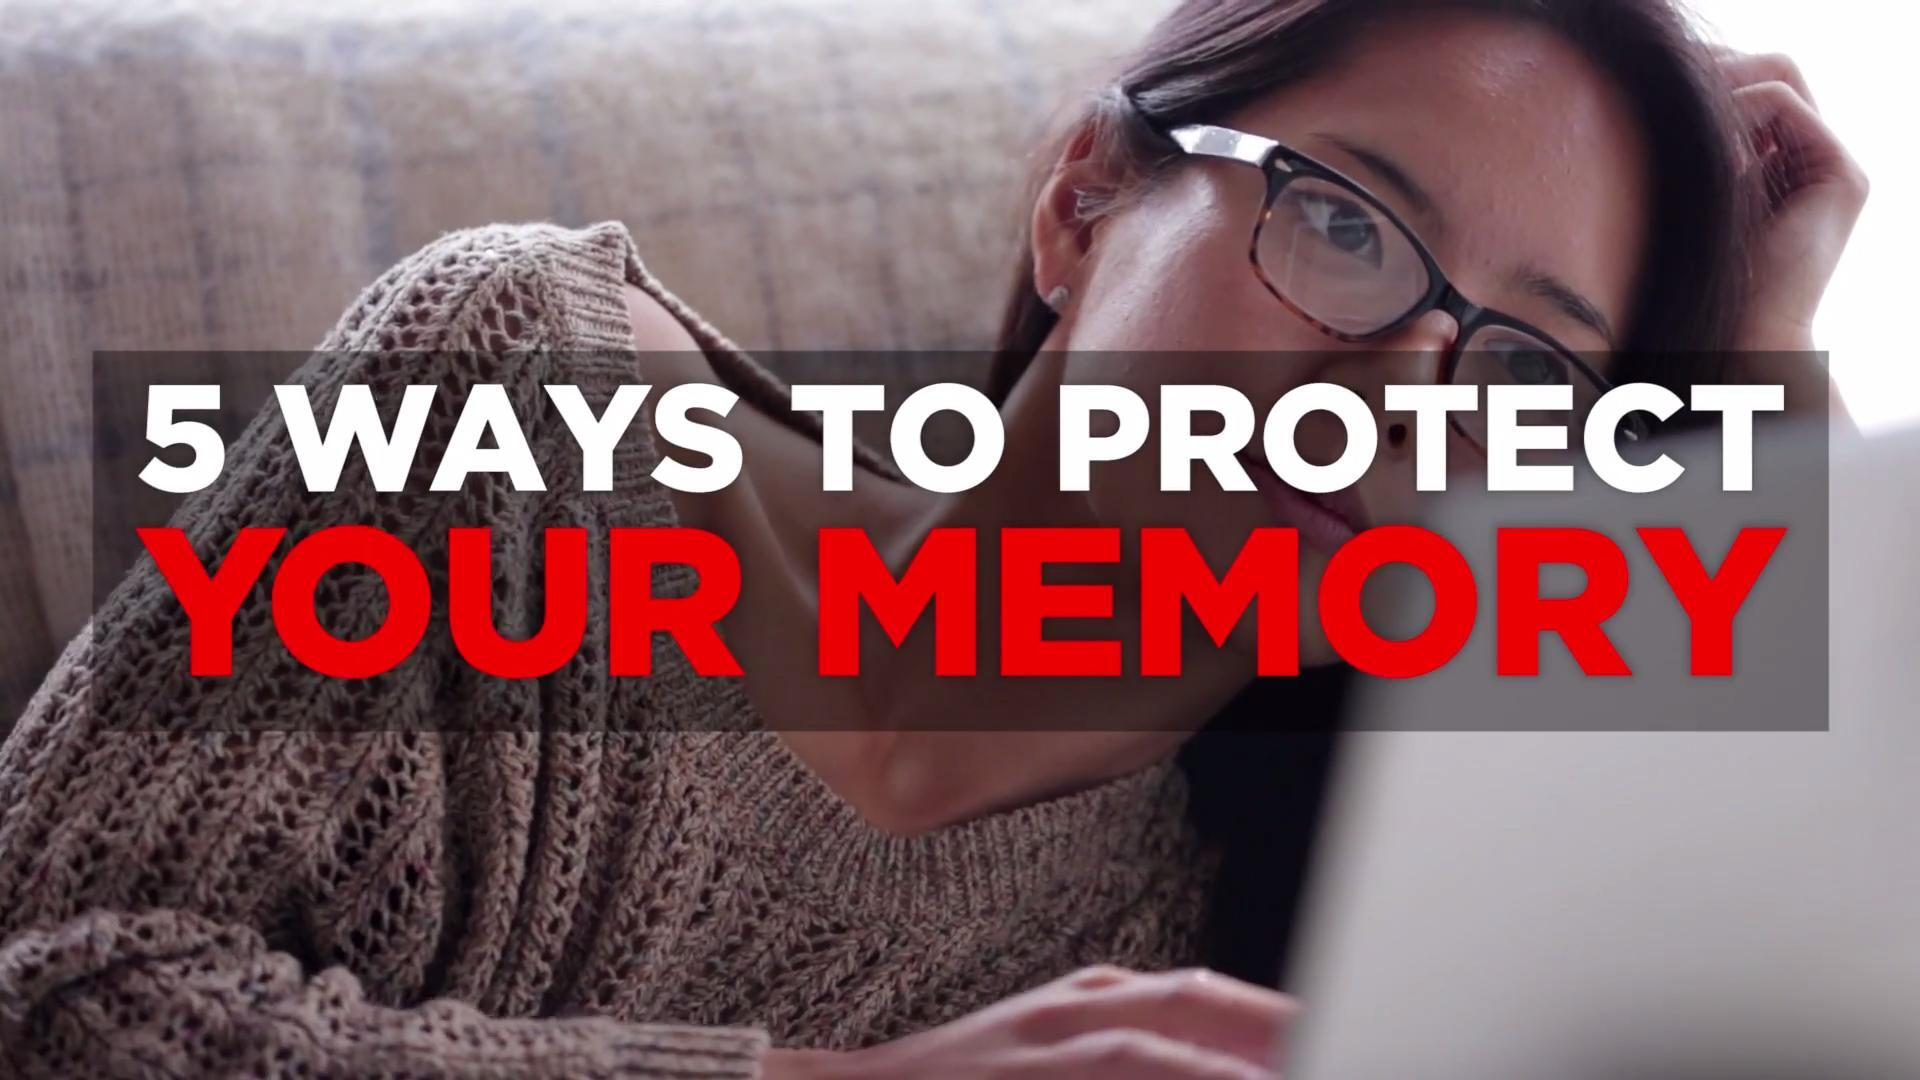 How to protect your mind now